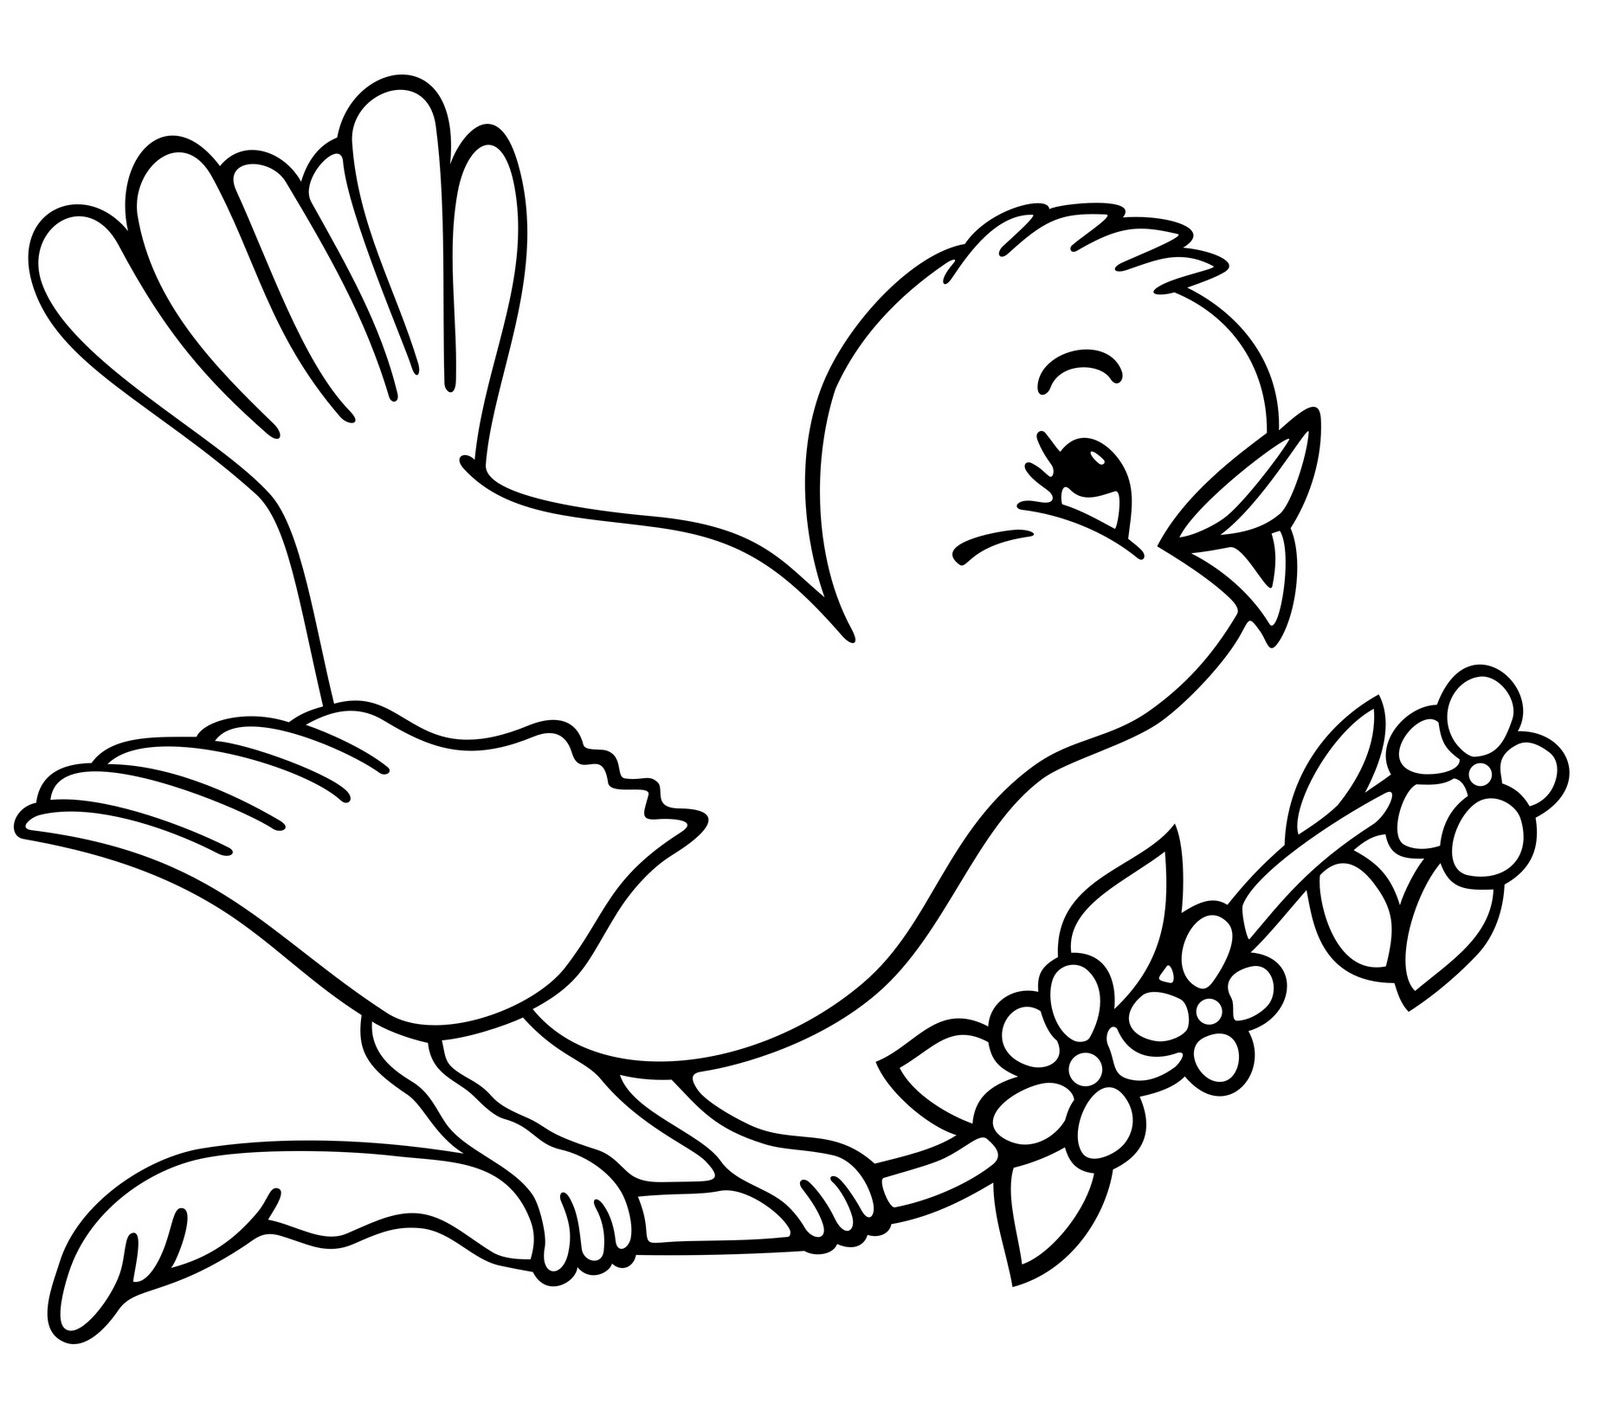 Childrens online colouring book - Bird Coloring Pages Free Online Printable Coloring Pages Sheets For Kids Get The Latest Free Bird Coloring Pages Images Favorite Coloring Pages To Print